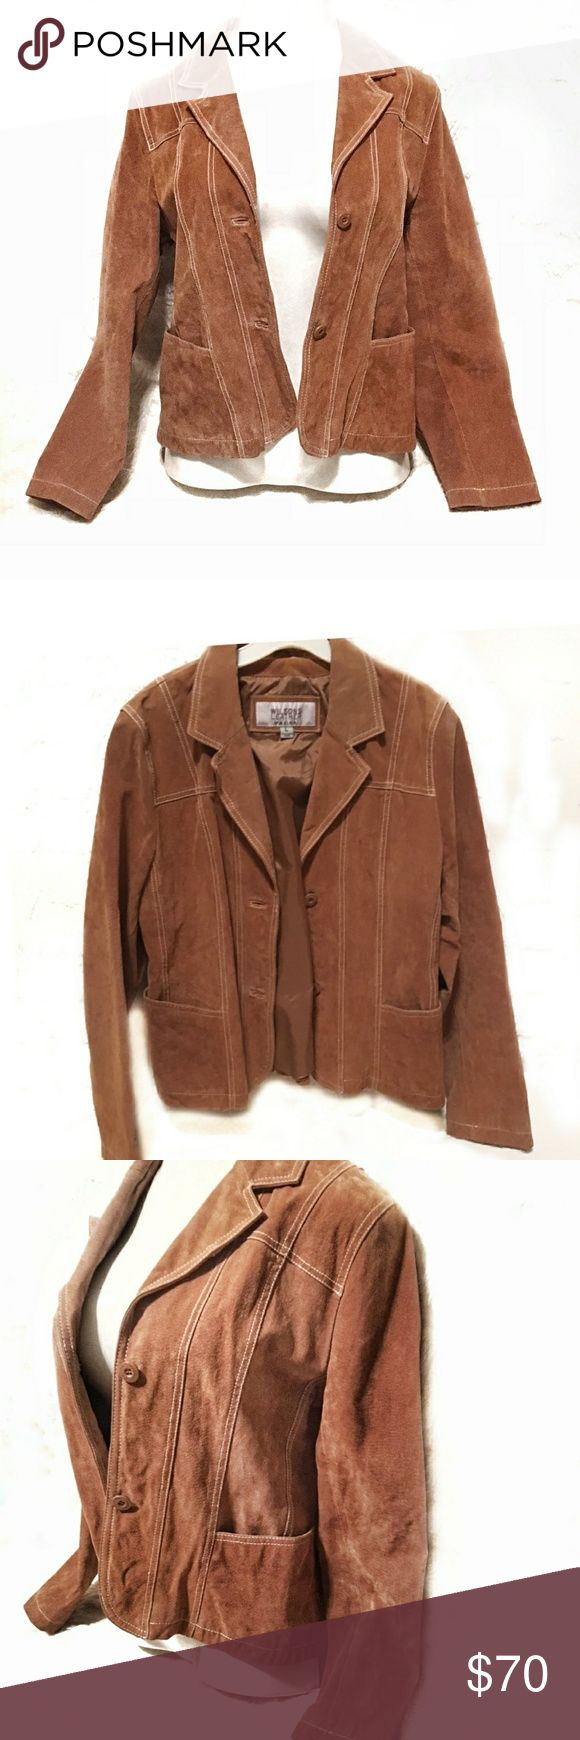 🔥SALE🔥 Wilson's Leather Maxima tan jacket Authentic vintage brown leather jacket from Wilson's Leather Maxima  Size Large - true to size  Great condition!! No damage to jacket.  Motorcycle style  MSRP $175 Wilsons Leather Jackets & Coats Capes